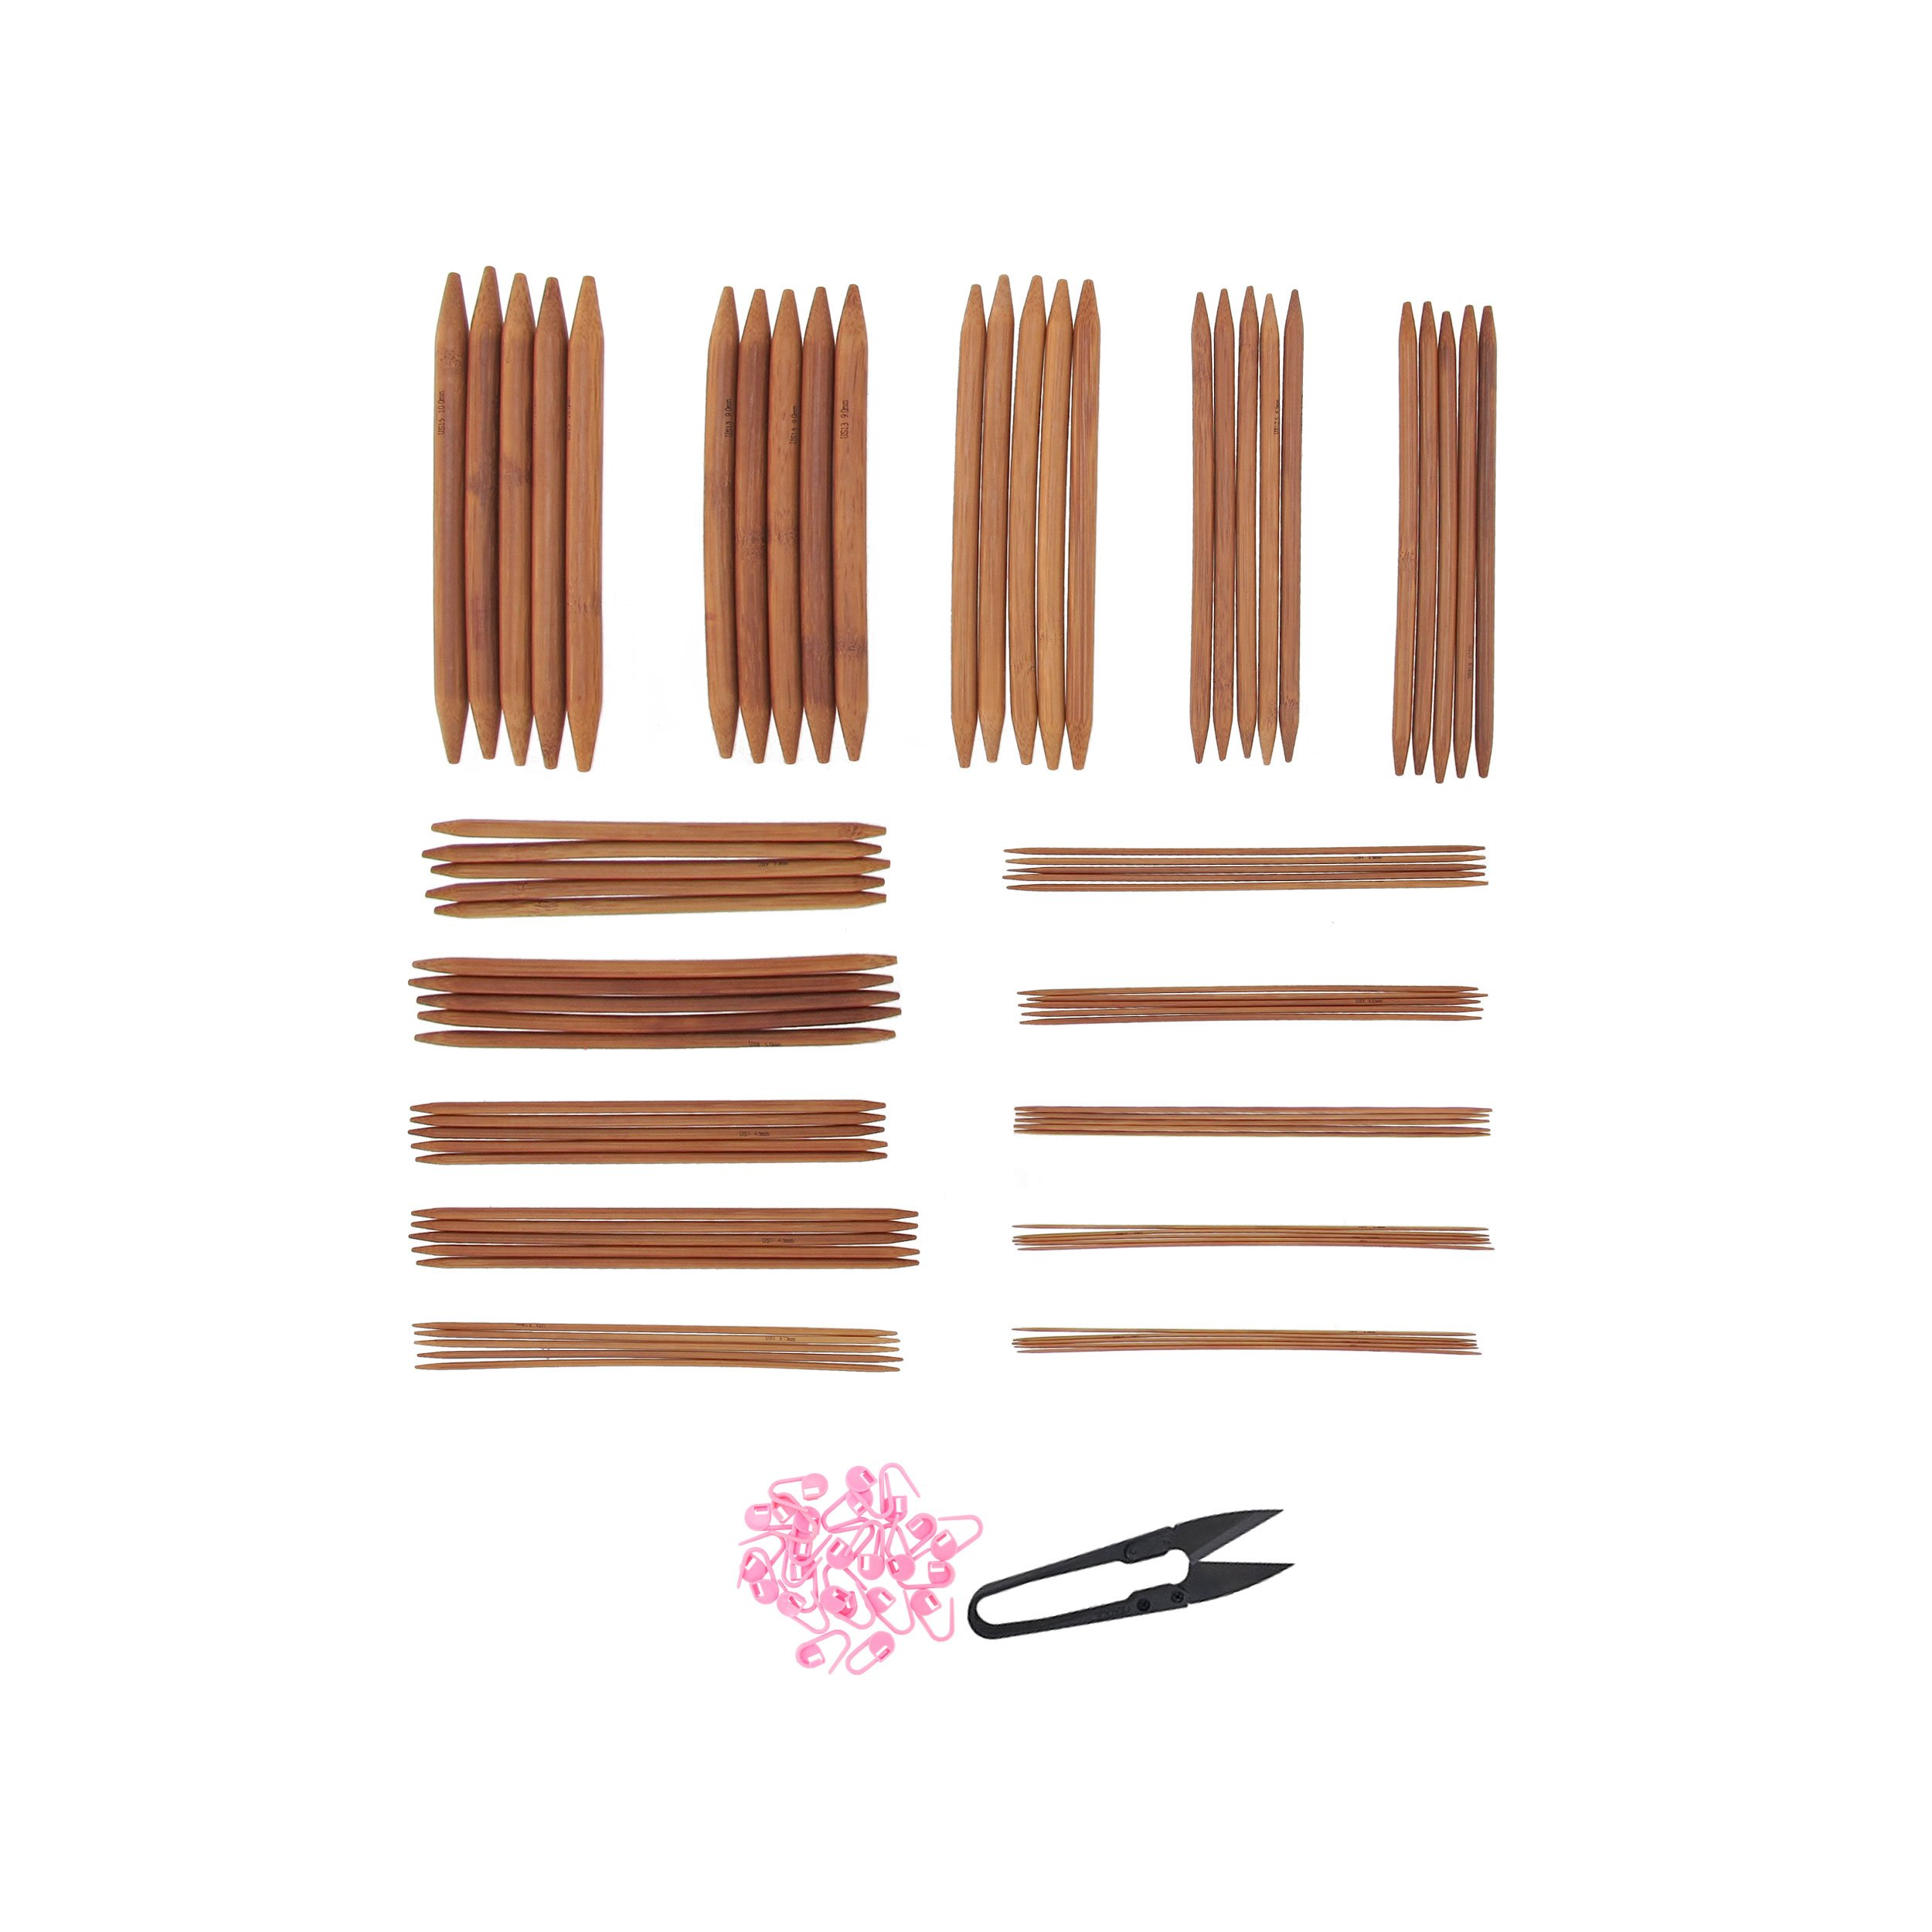 Bamboo Ultra Strong Knitting Needles Set 5'' Double Point 75 Pcs - 15 Sizes 2mm - 10mm (5 needles per size) - Carbonized Brown - Comes w/Stitch Markers & Snip